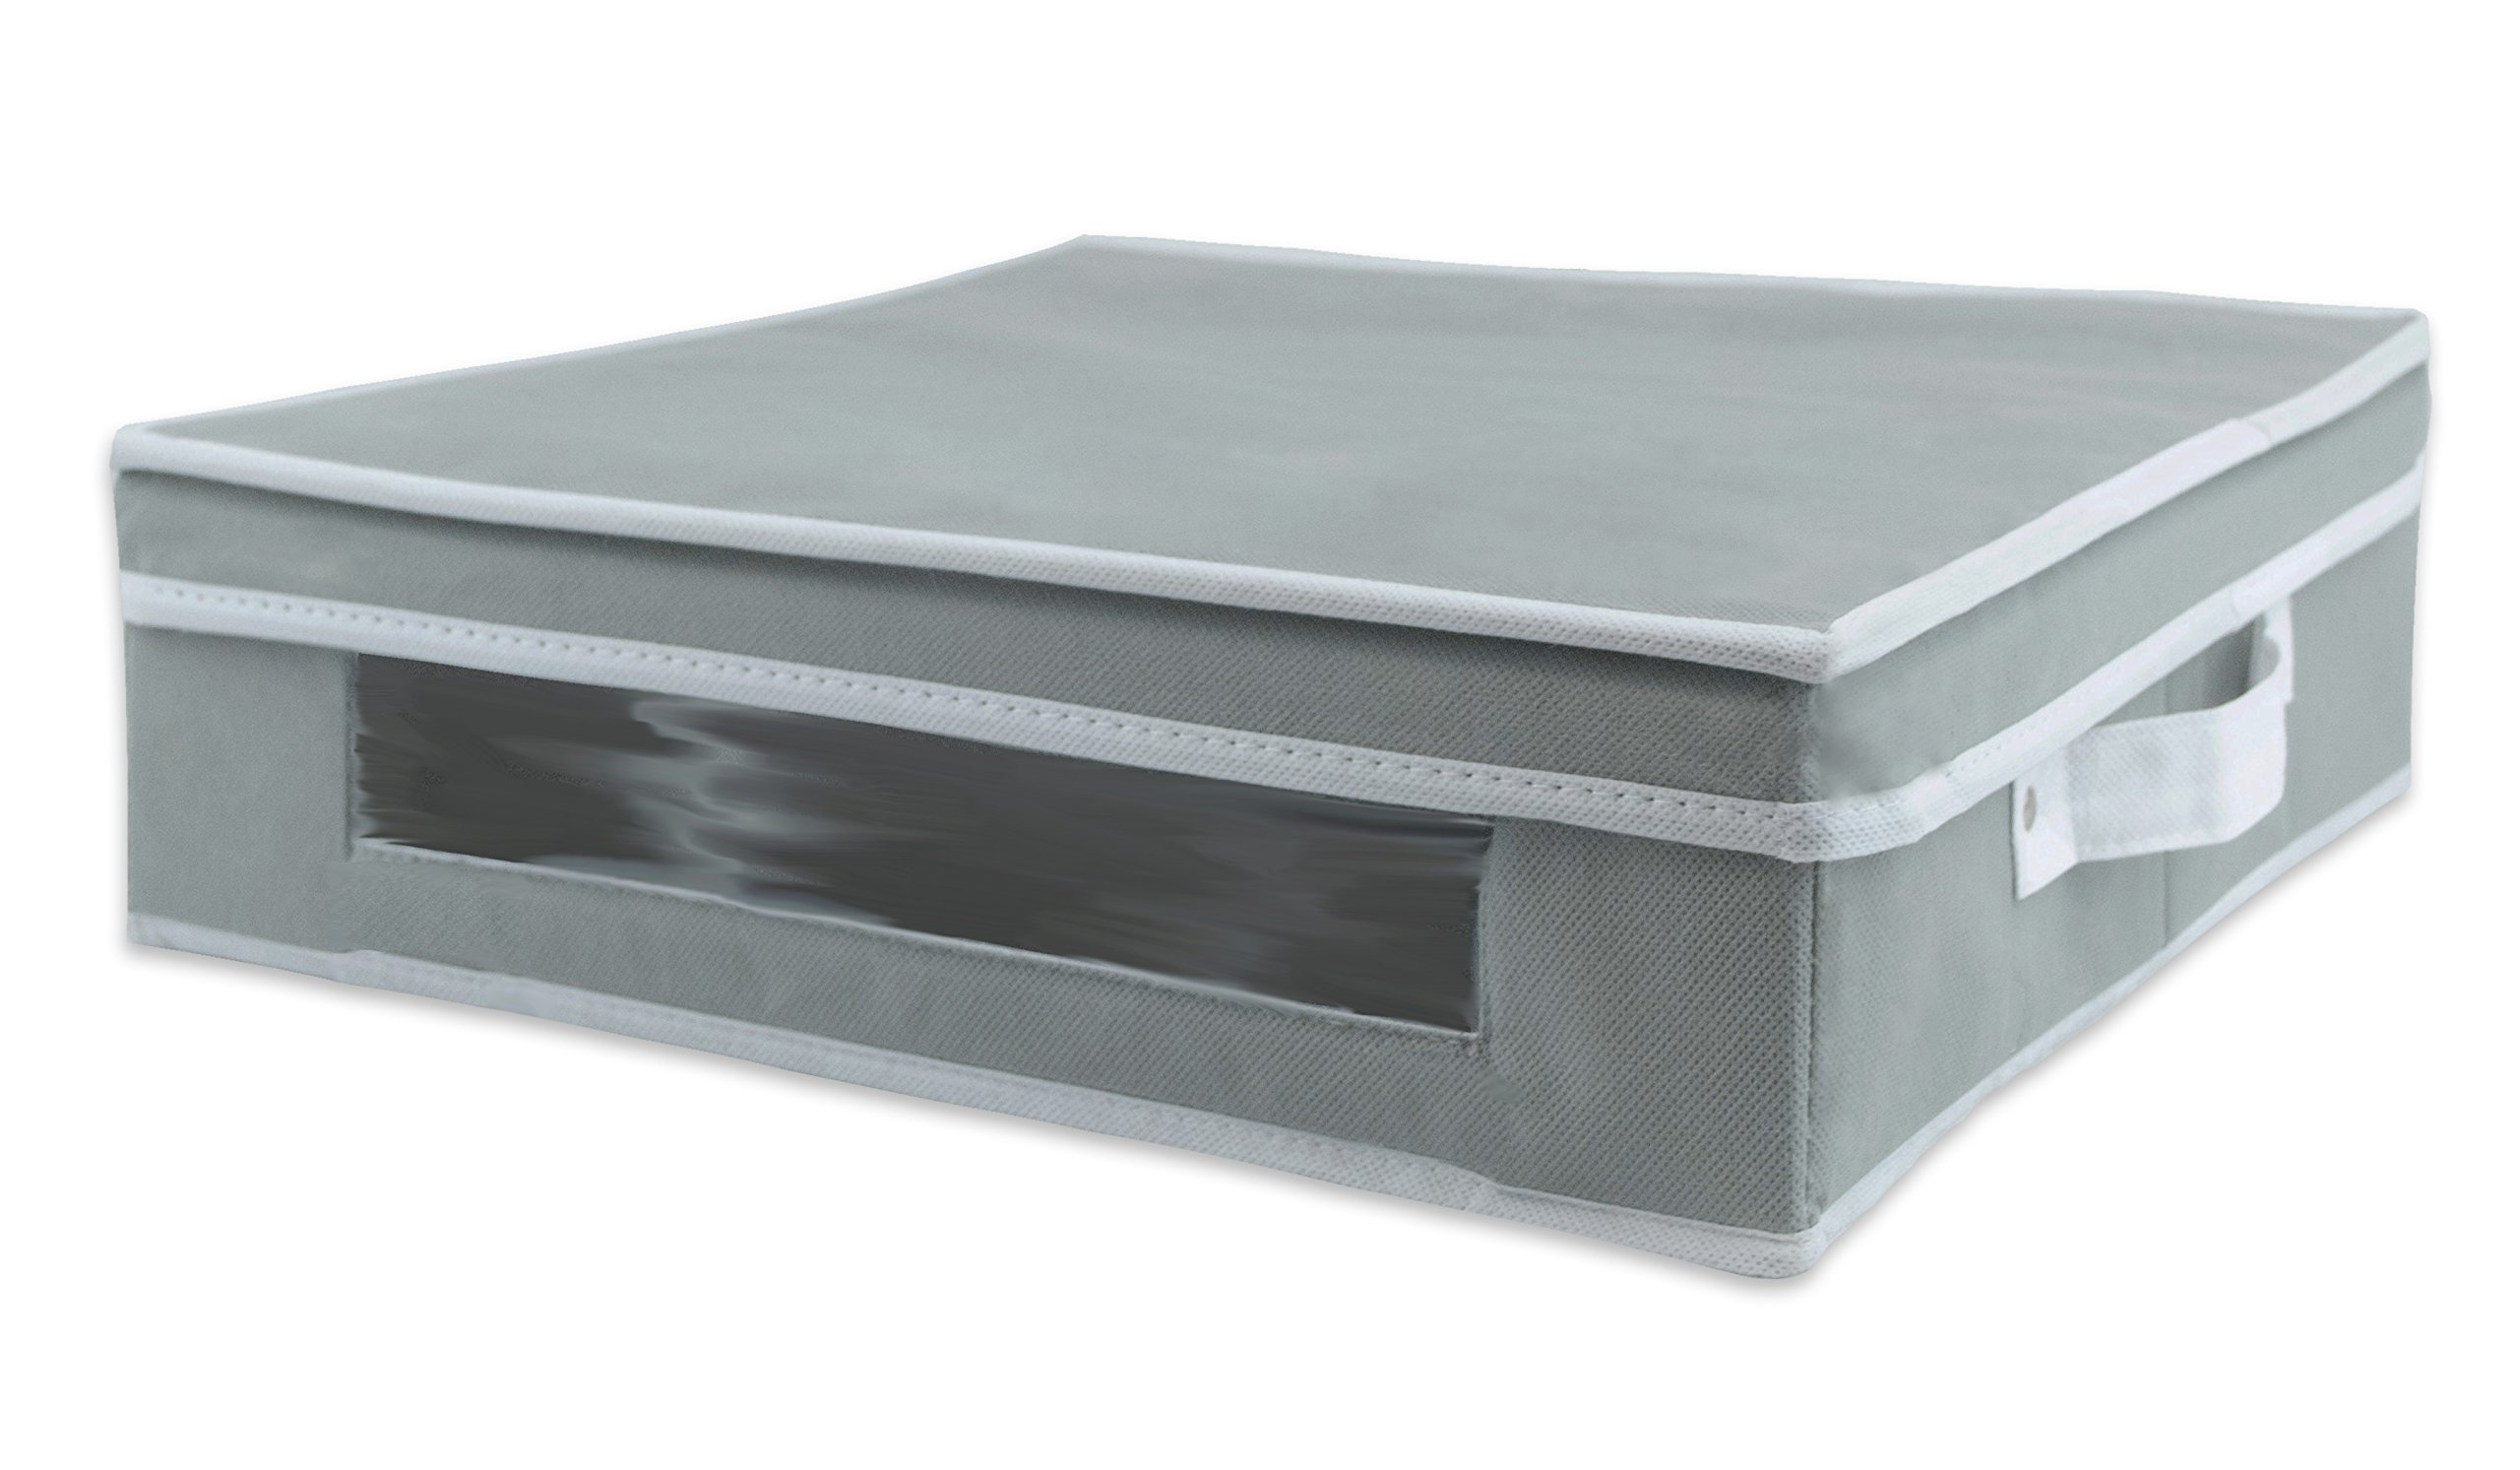 DII Large Plate Storage Bin with Separators for Protecting or Transporting Dinnerware or Fragile China - Gray